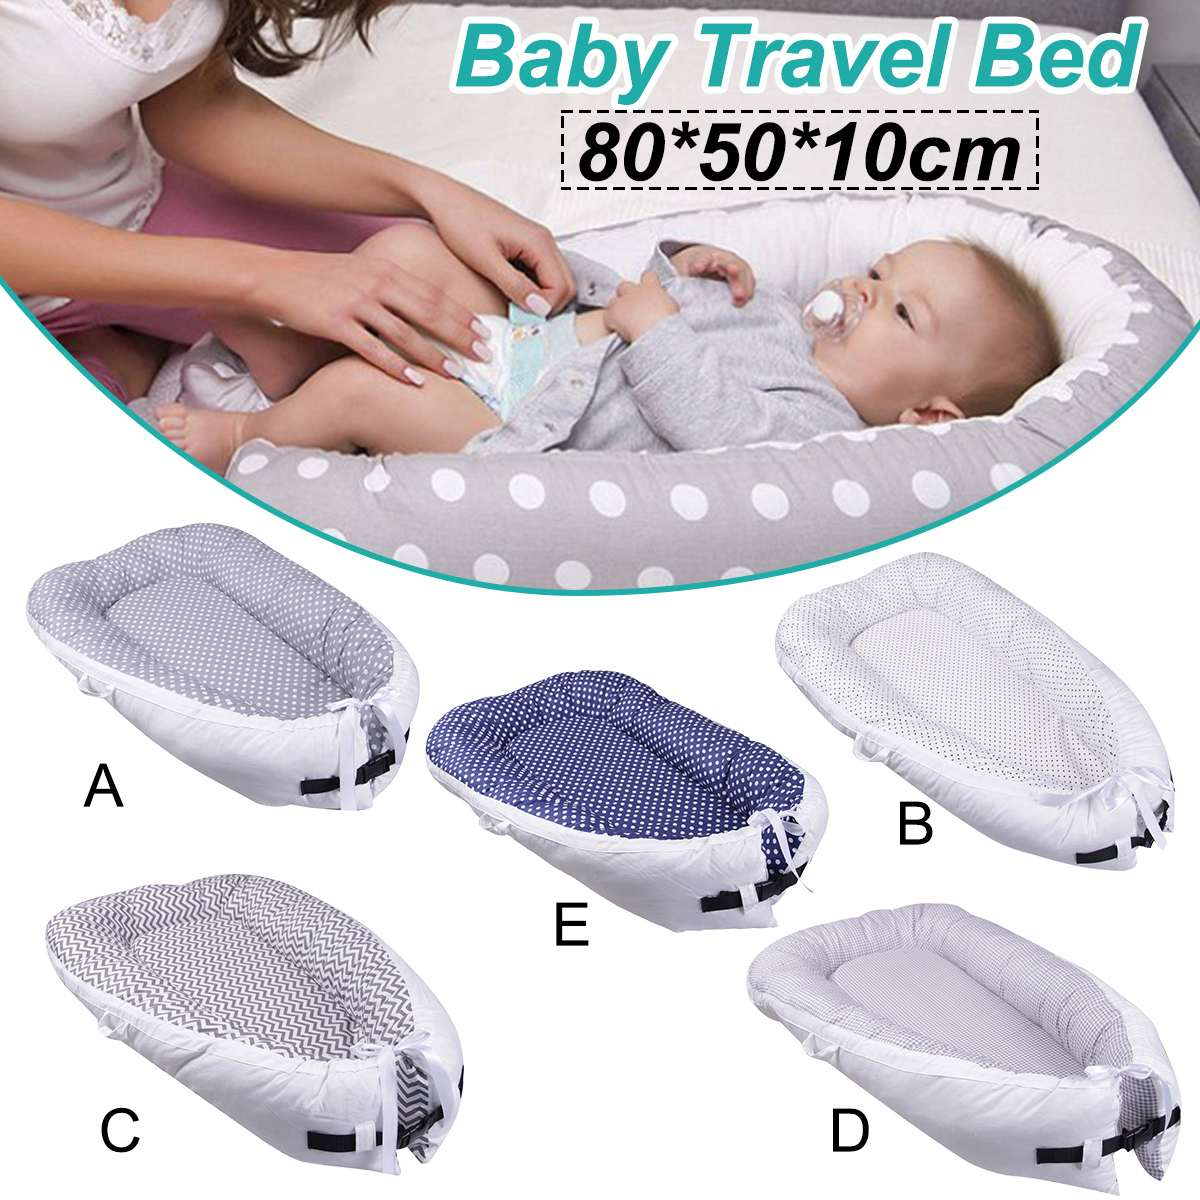 80*50cm Baby Nest Bed Portable Crib Travel Bed Infant Toddler Cotton Cradle For Newborn Baby Bassinet Bumper  Point Stripe